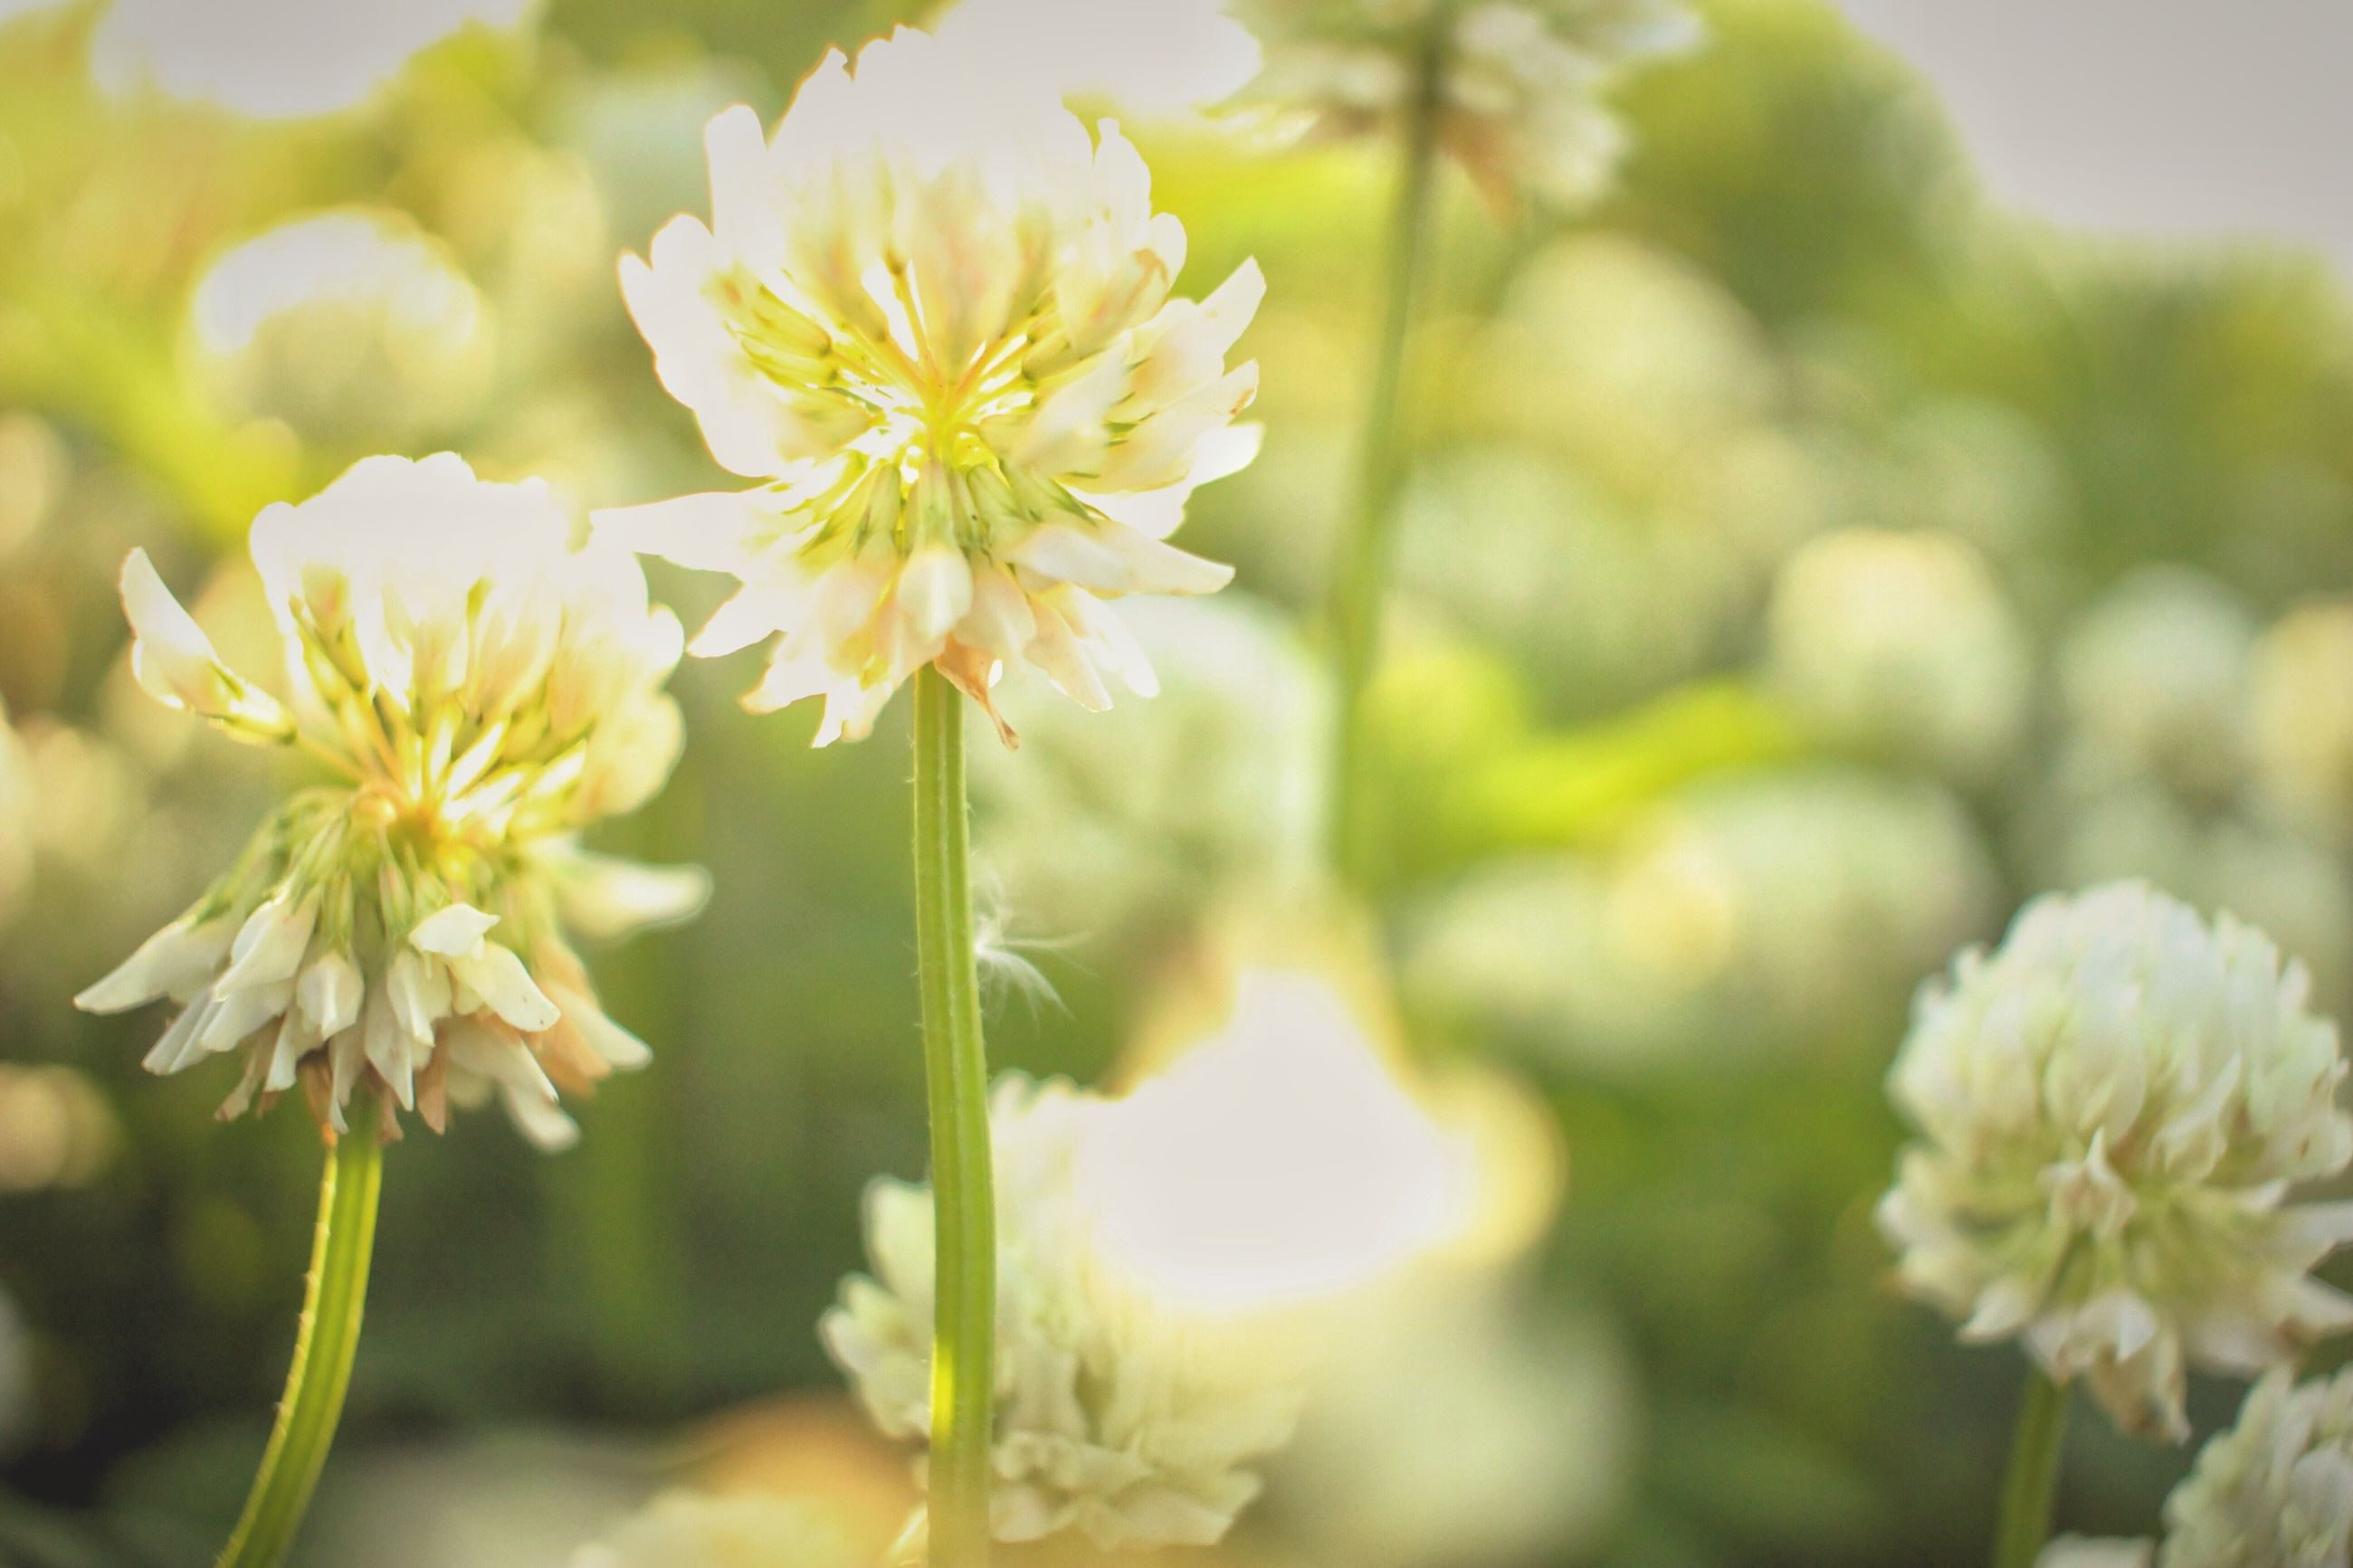 flower, freshness, petal, fragility, growth, focus on foreground, flower head, beauty in nature, close-up, blooming, nature, white color, plant, in bloom, stem, blossom, selective focus, outdoors, park - man made space, day